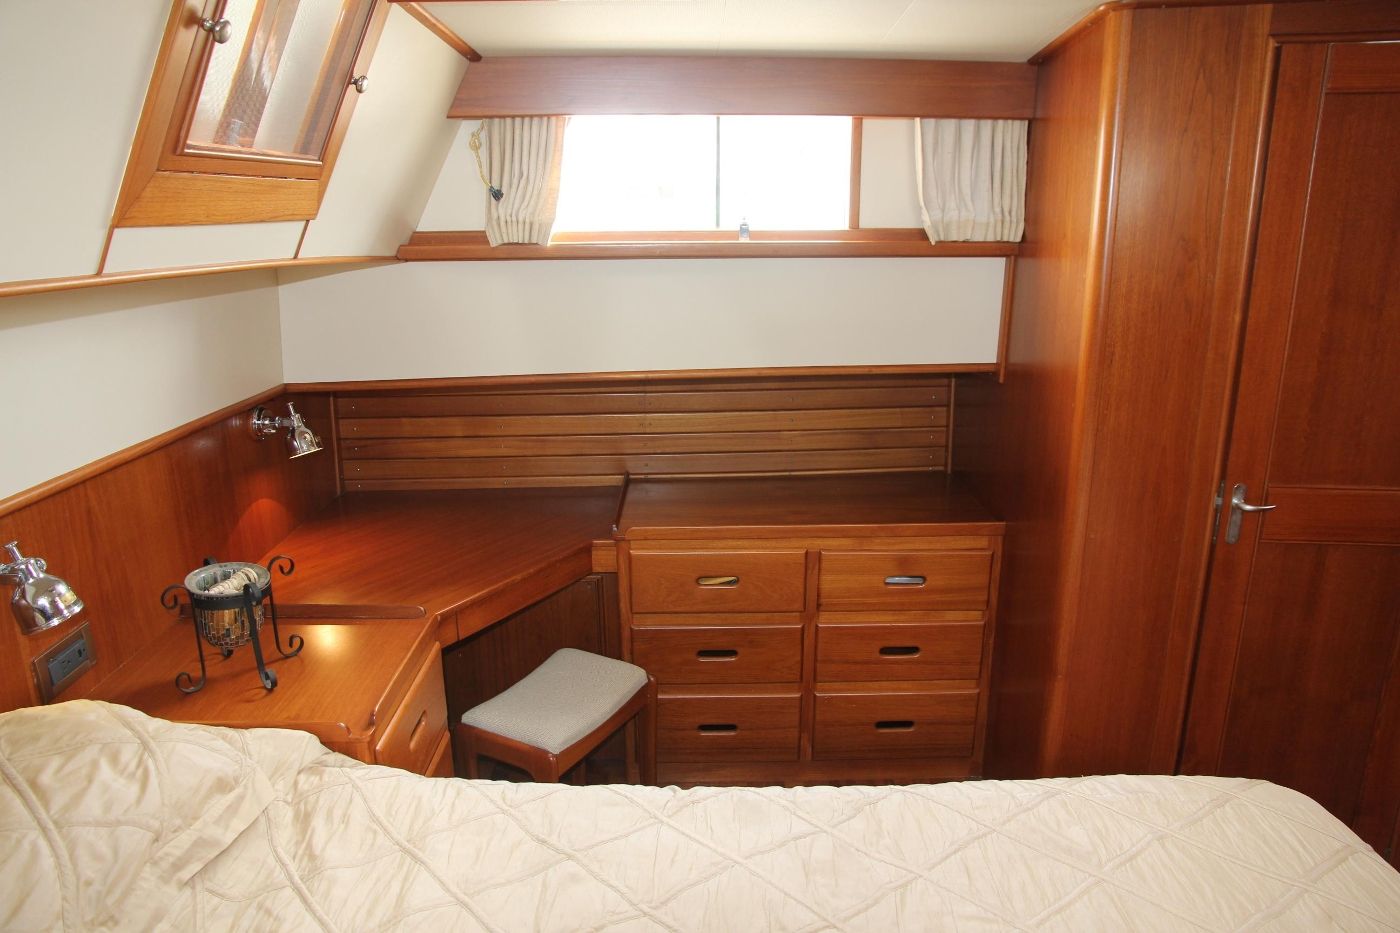 2001 Grand Banks 42 Classic, Desk and Cabinet Storage